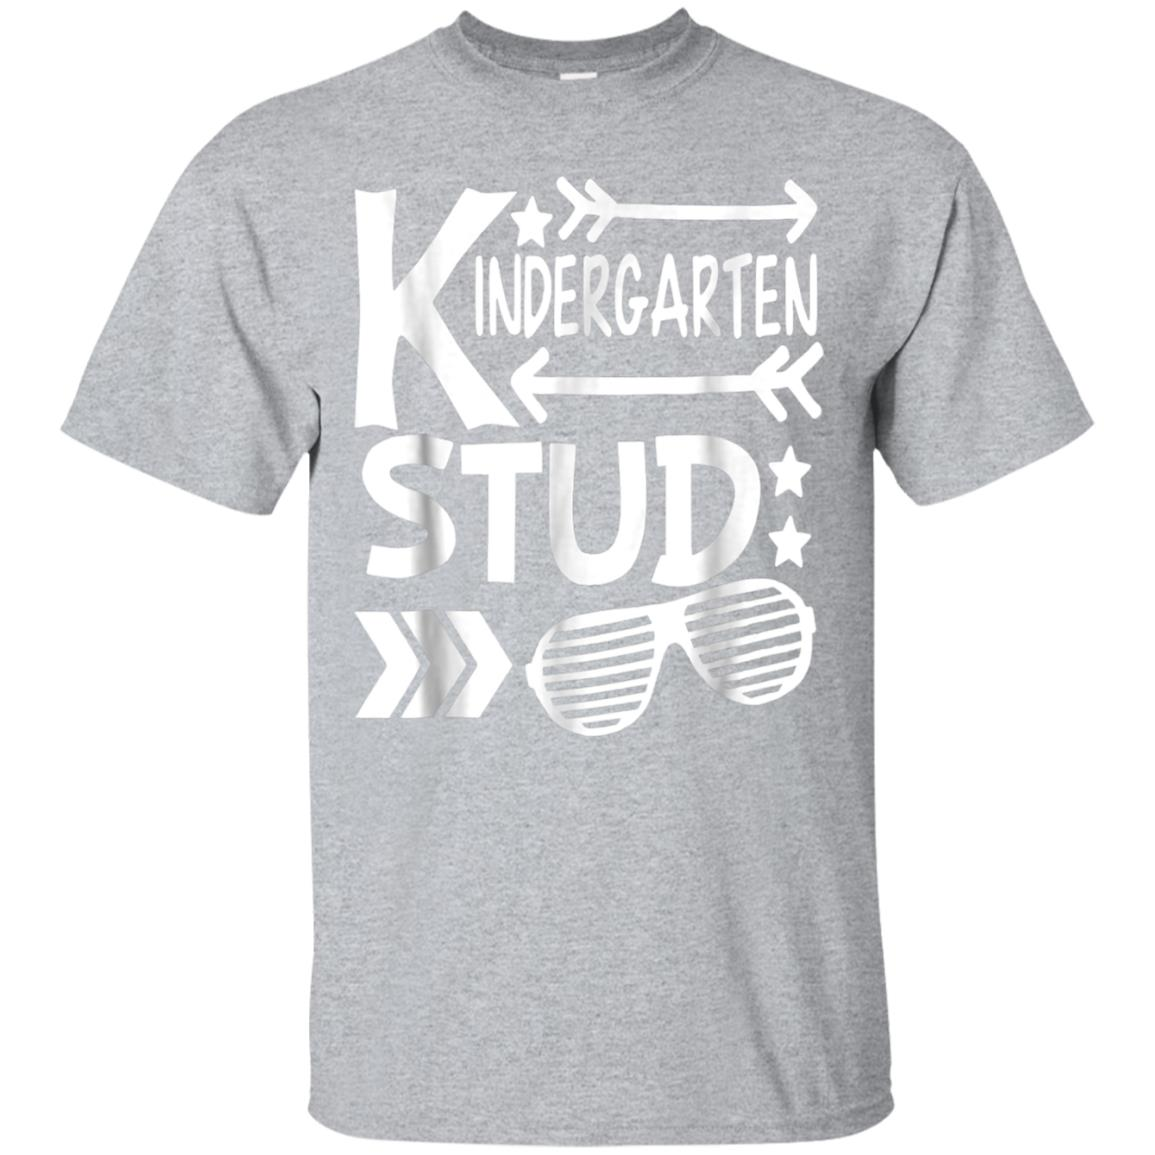 Kindergarten Stud T Shirt, Back To School Tee Gift 99promocode